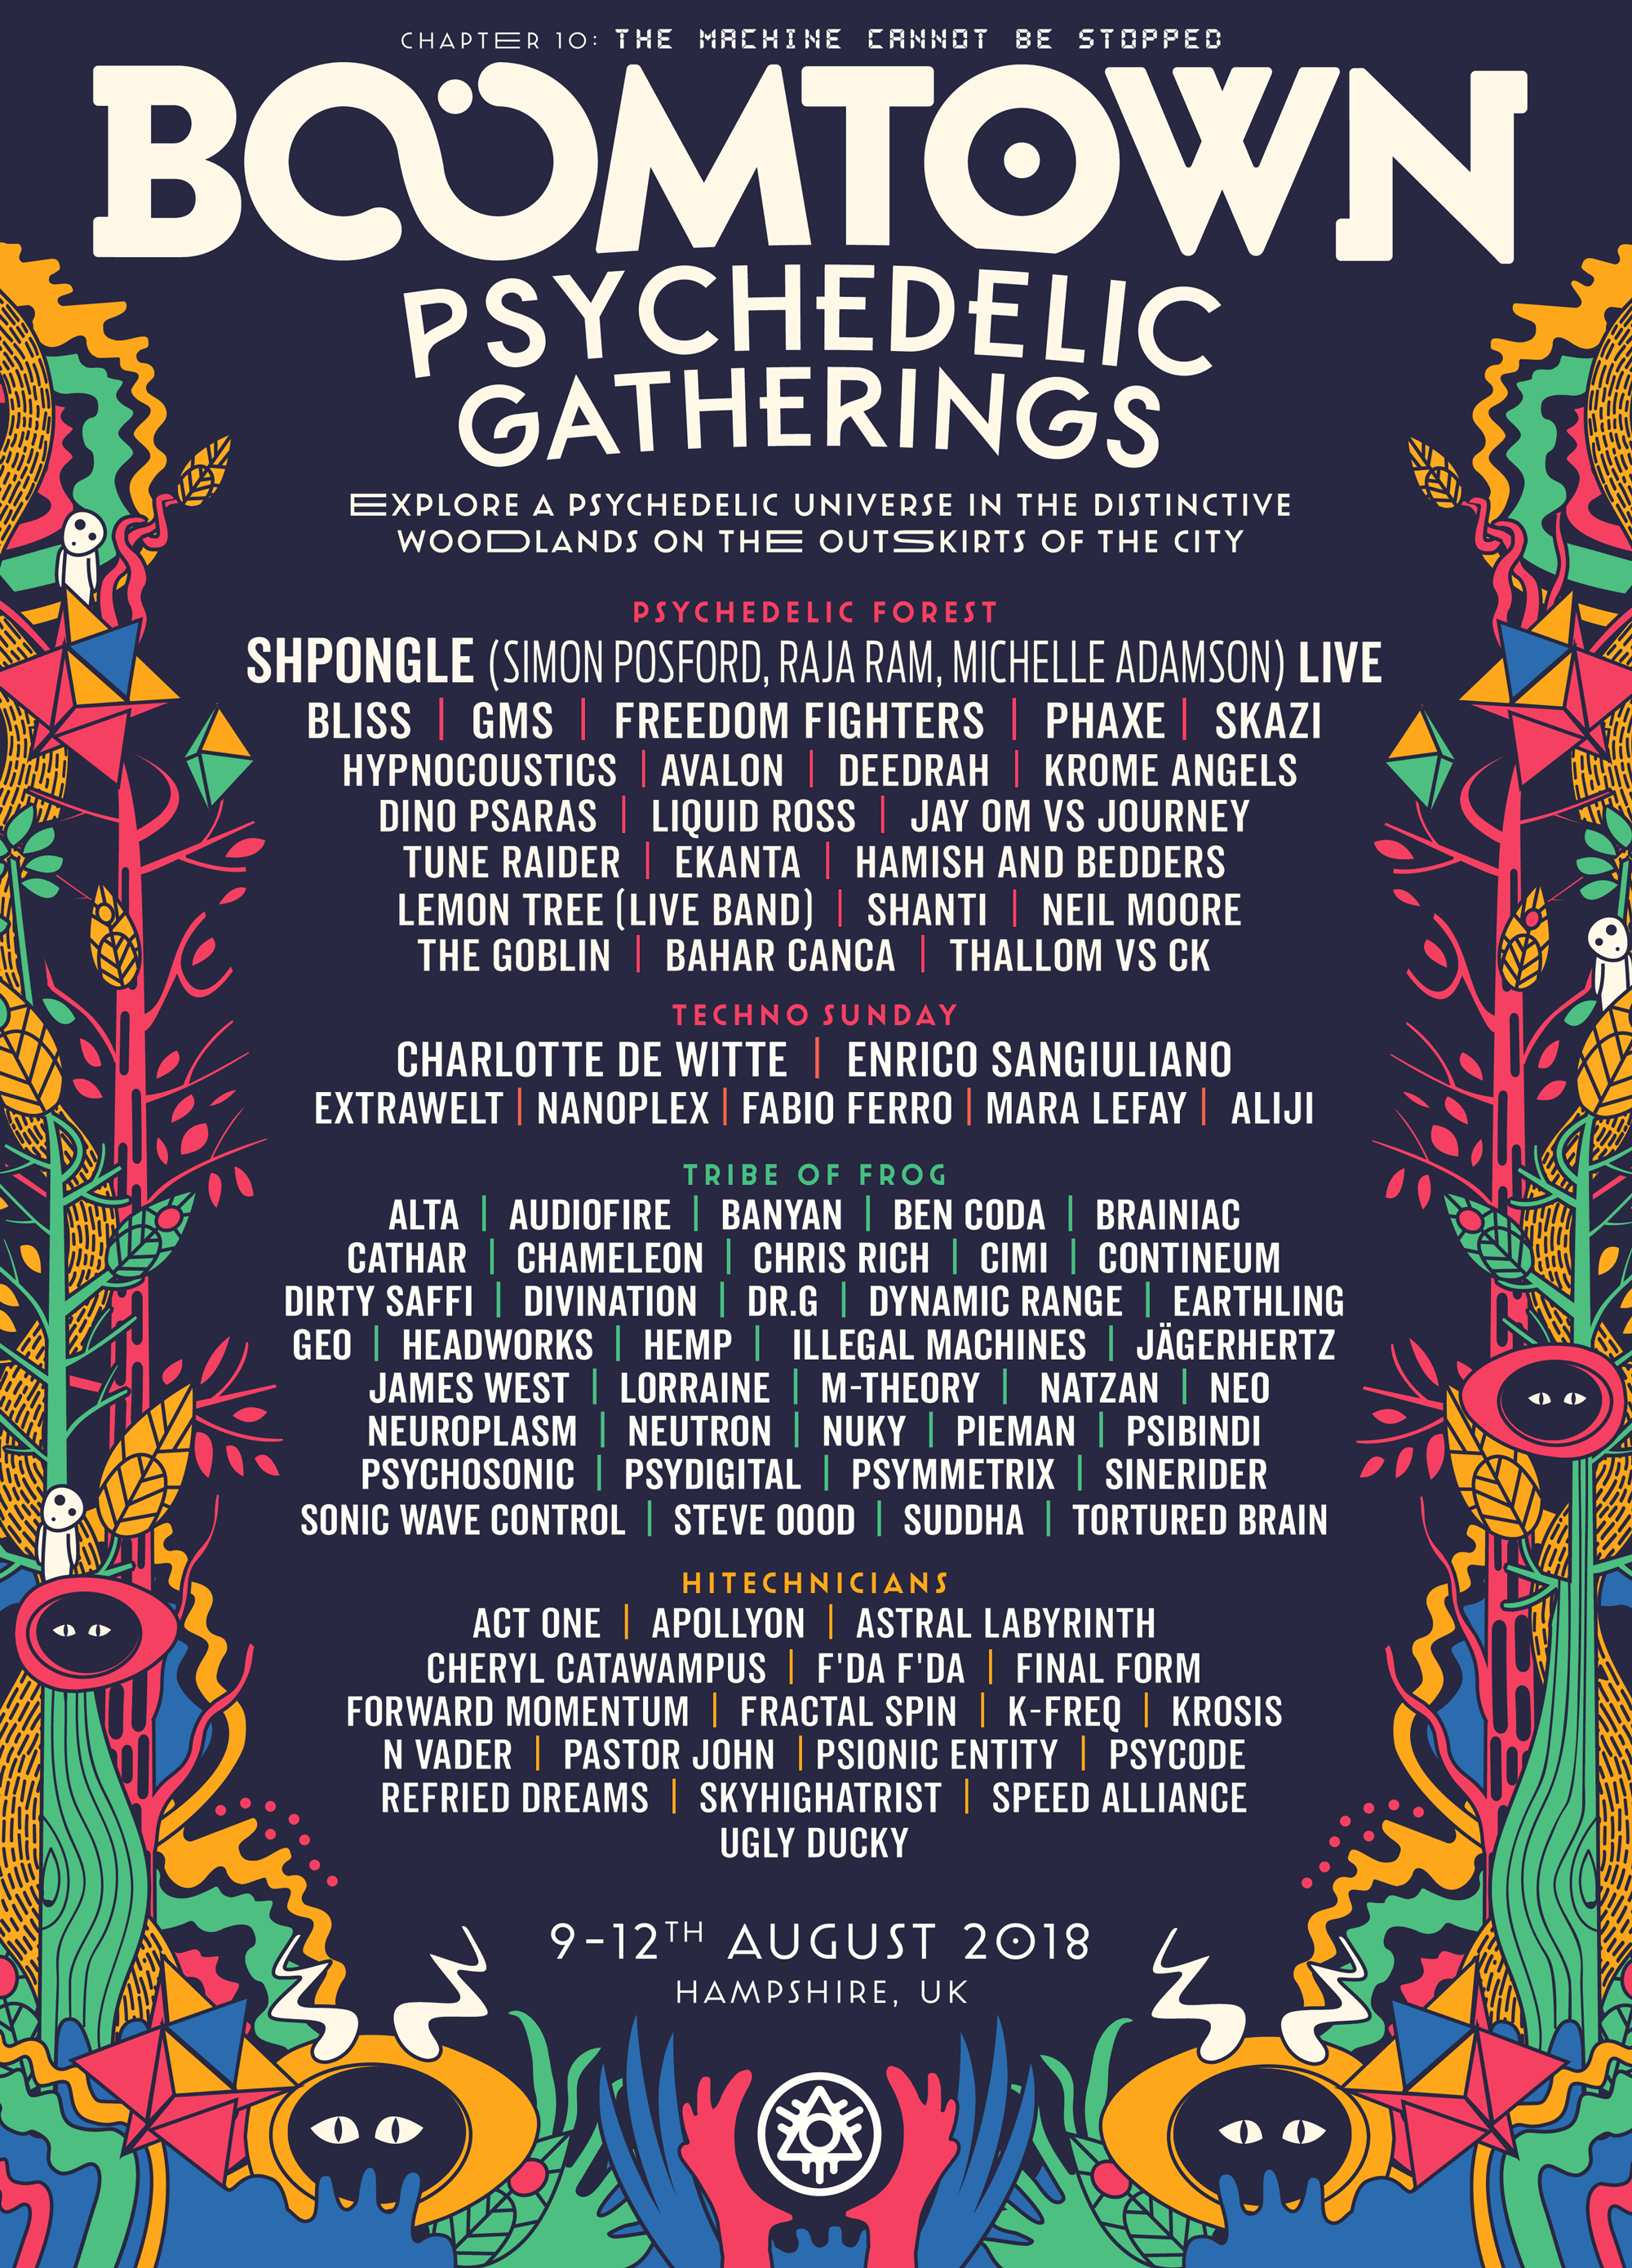 BoomTown 2018 Psychedelic Gatherings Line Up